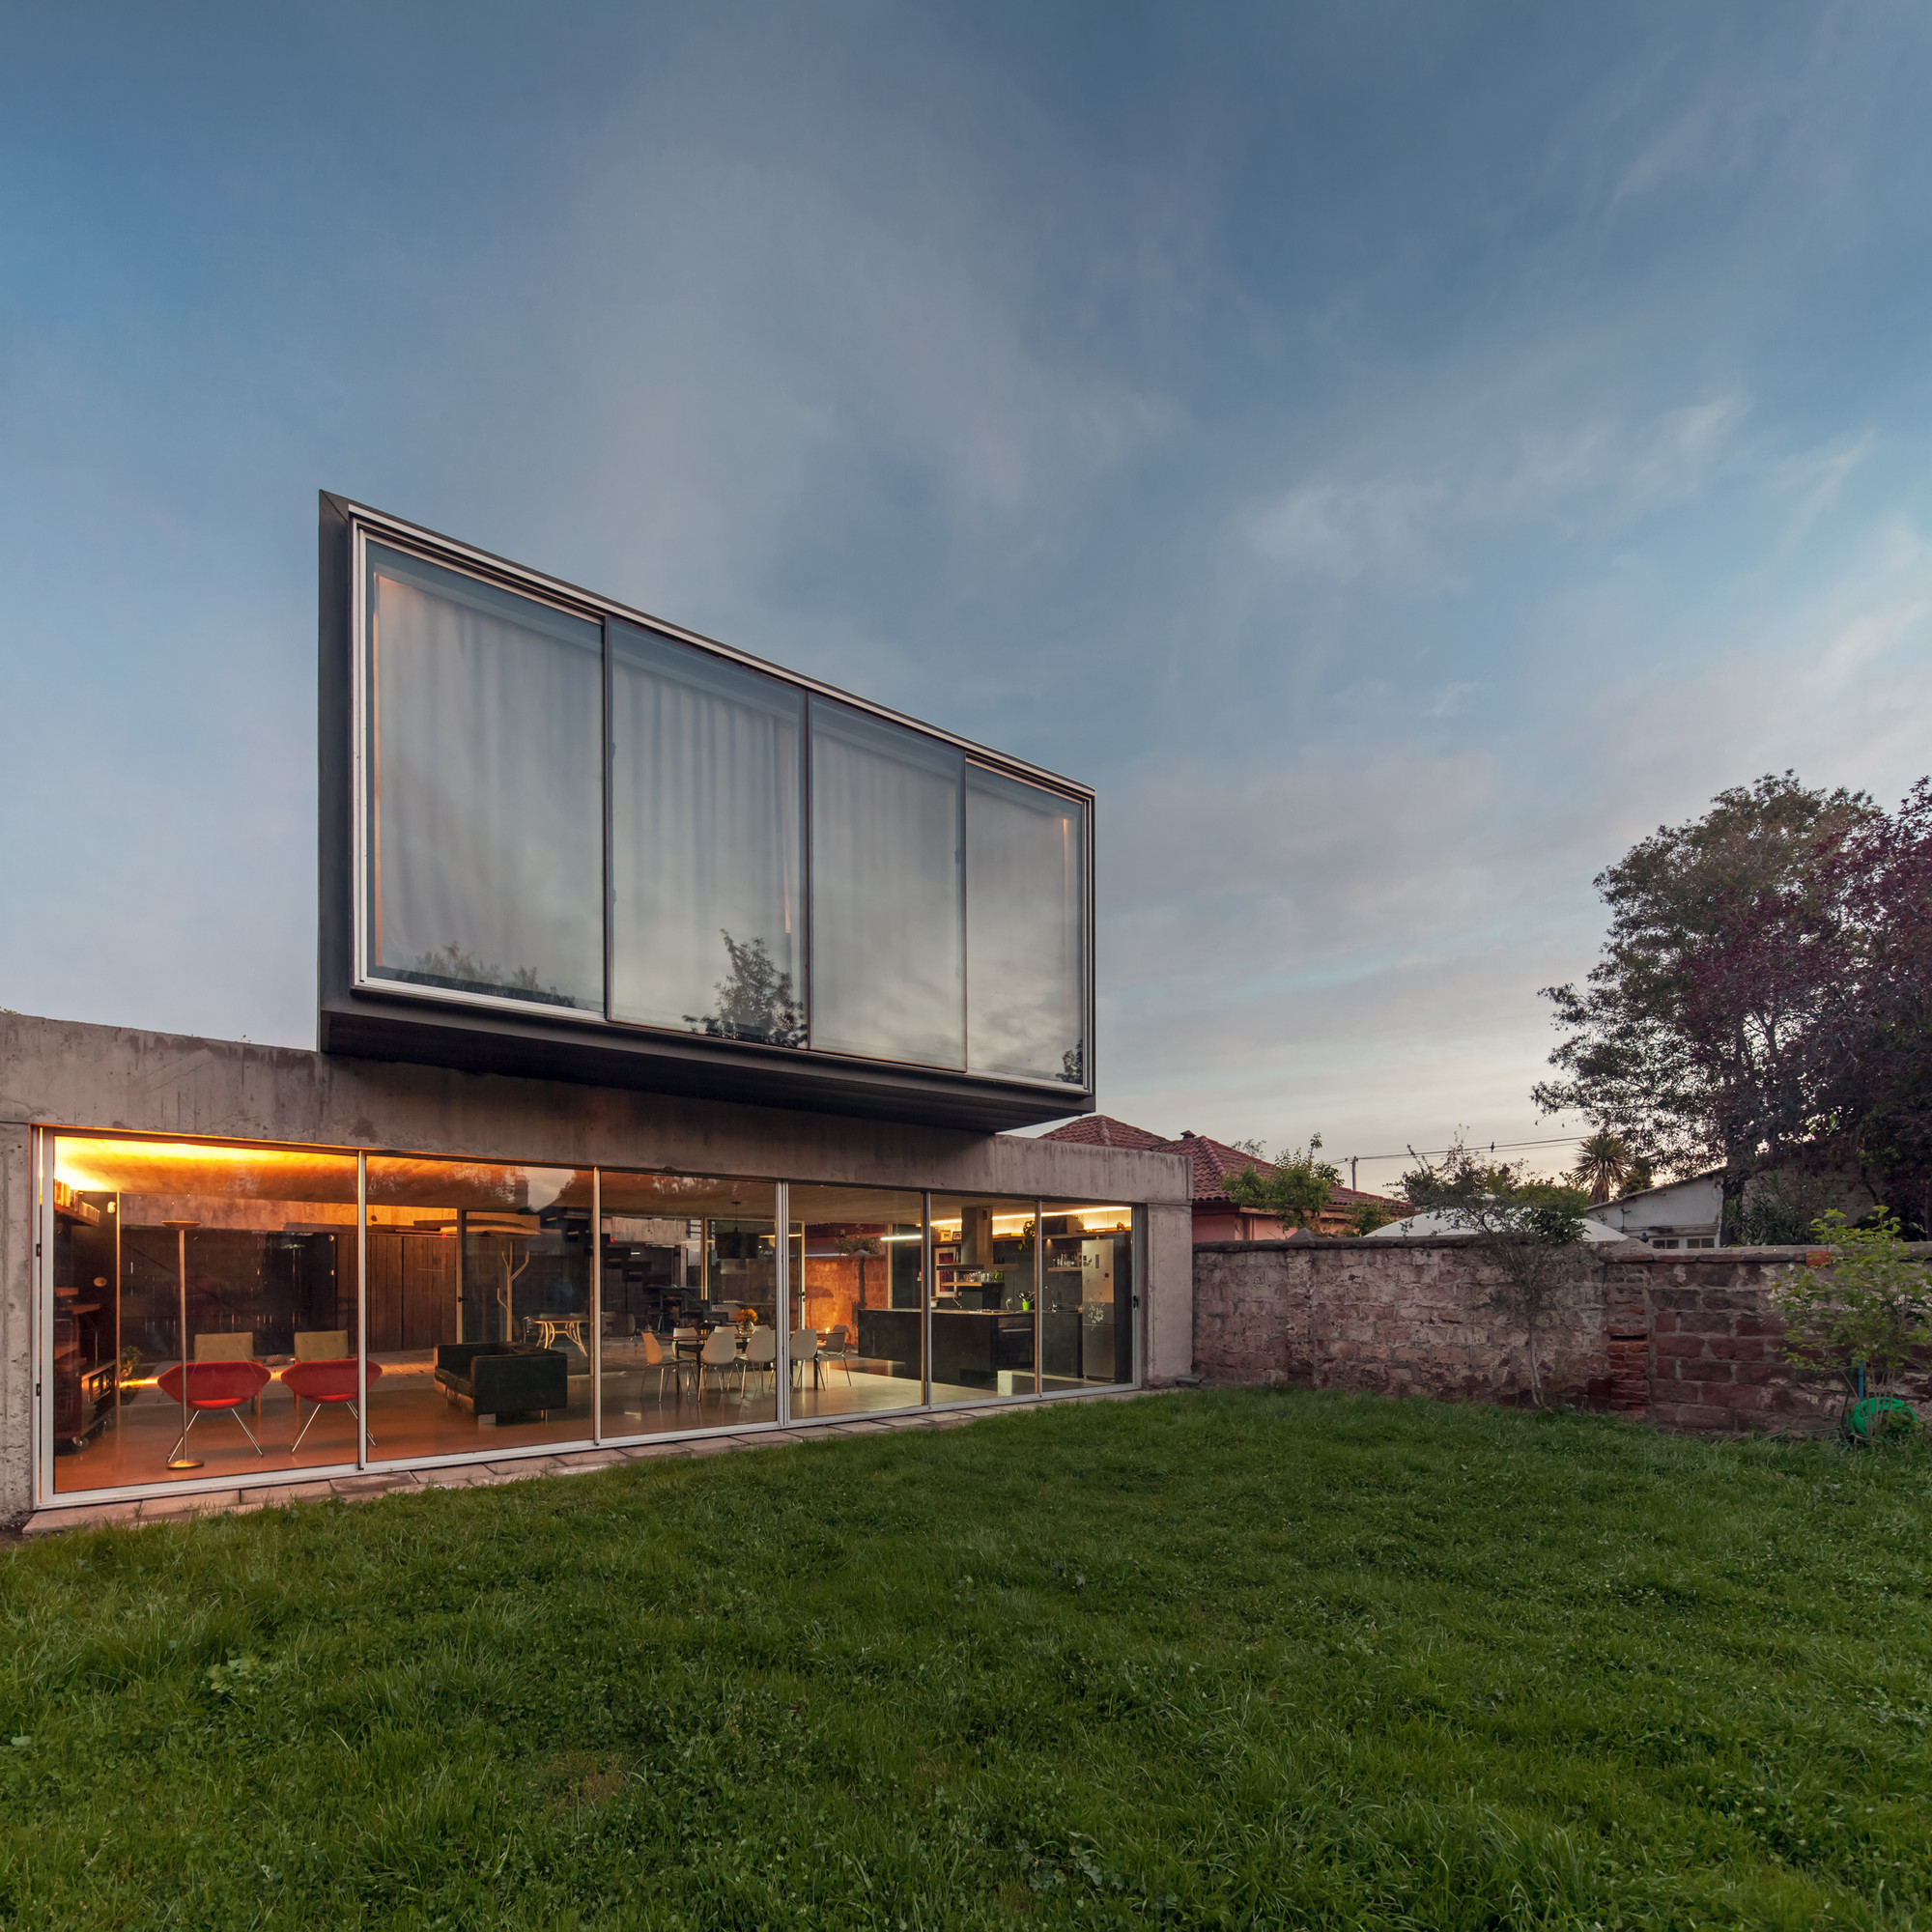 Patio House un patio house / polidura + talhouk arquitectos | archdaily